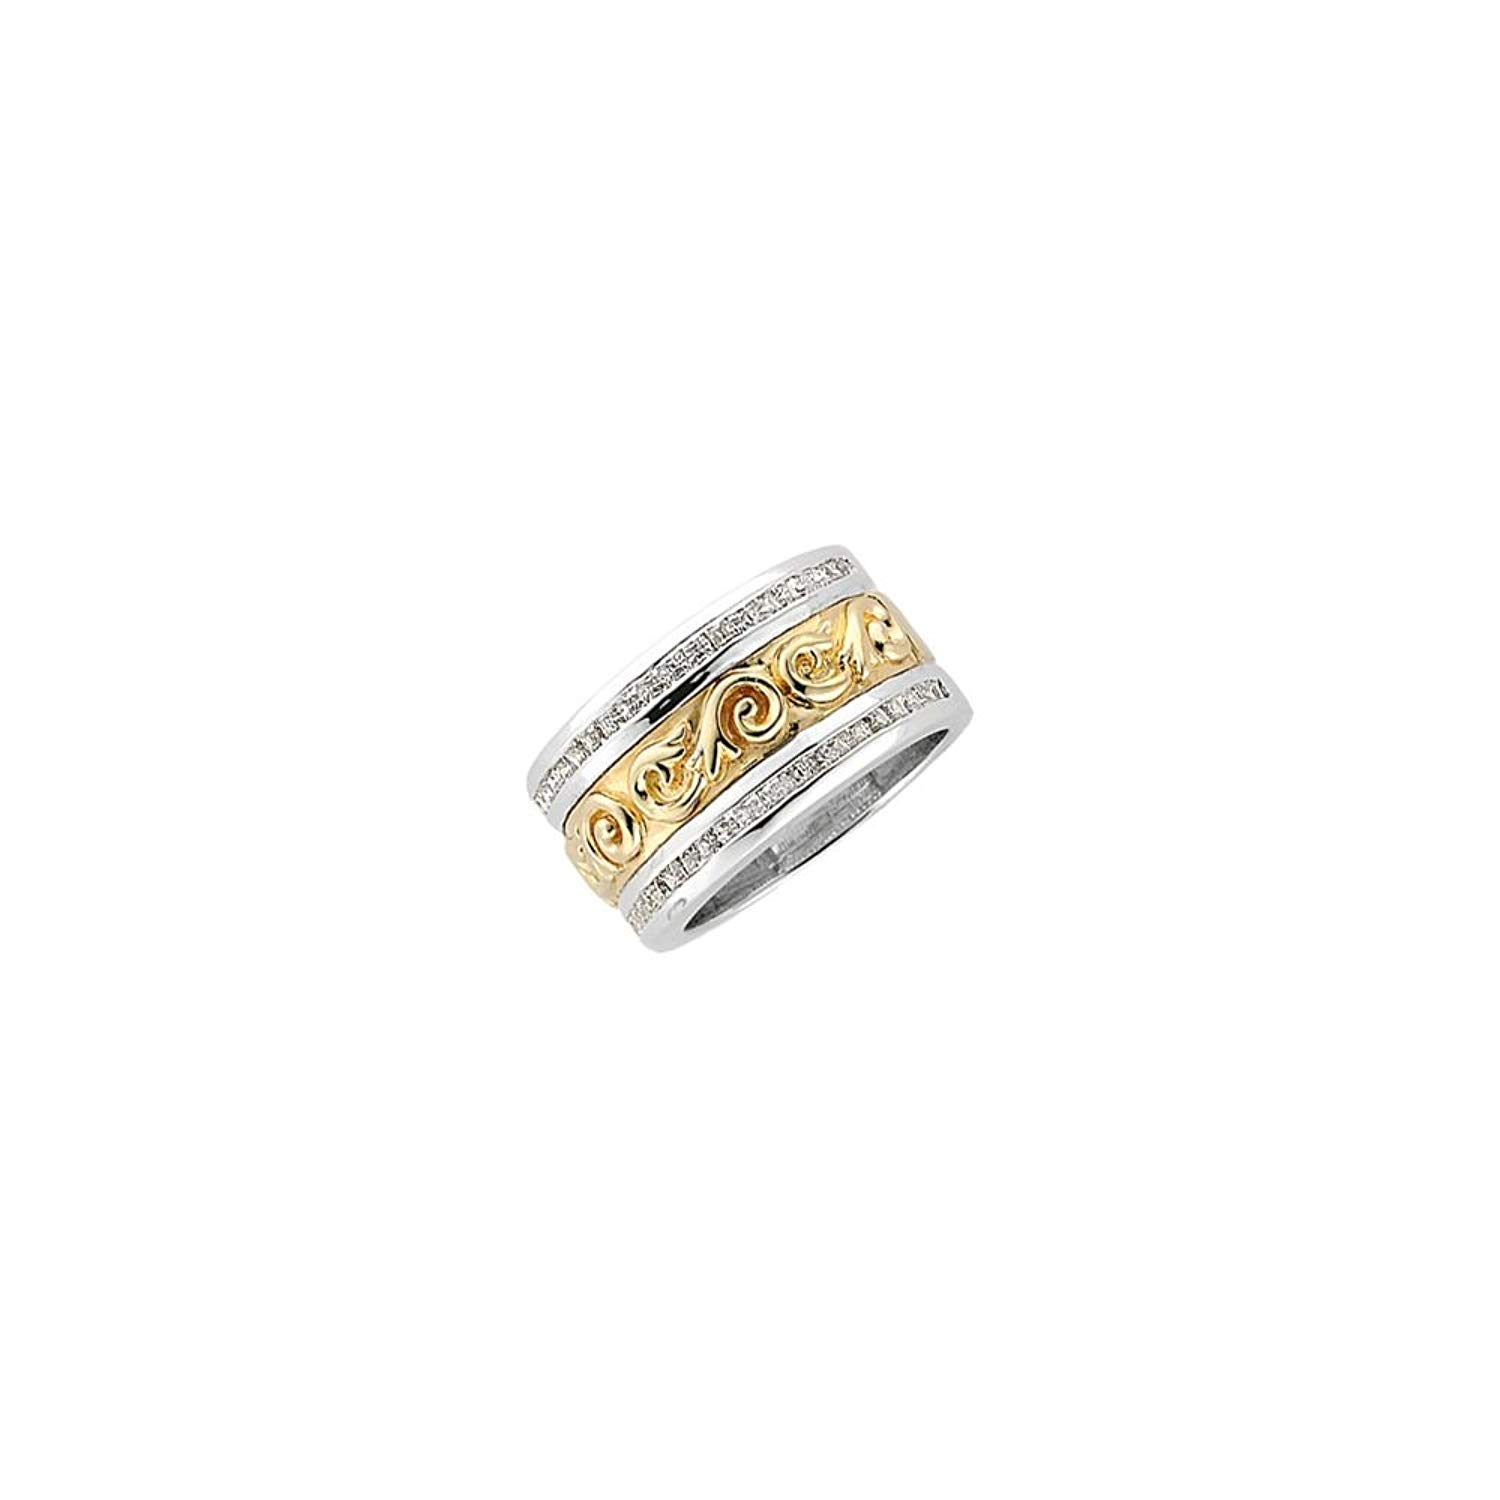 Bonyak Jewelry Etruscan-Style Anniversary Band in Two-Tone 14k White & Yellow Gold - Size 6